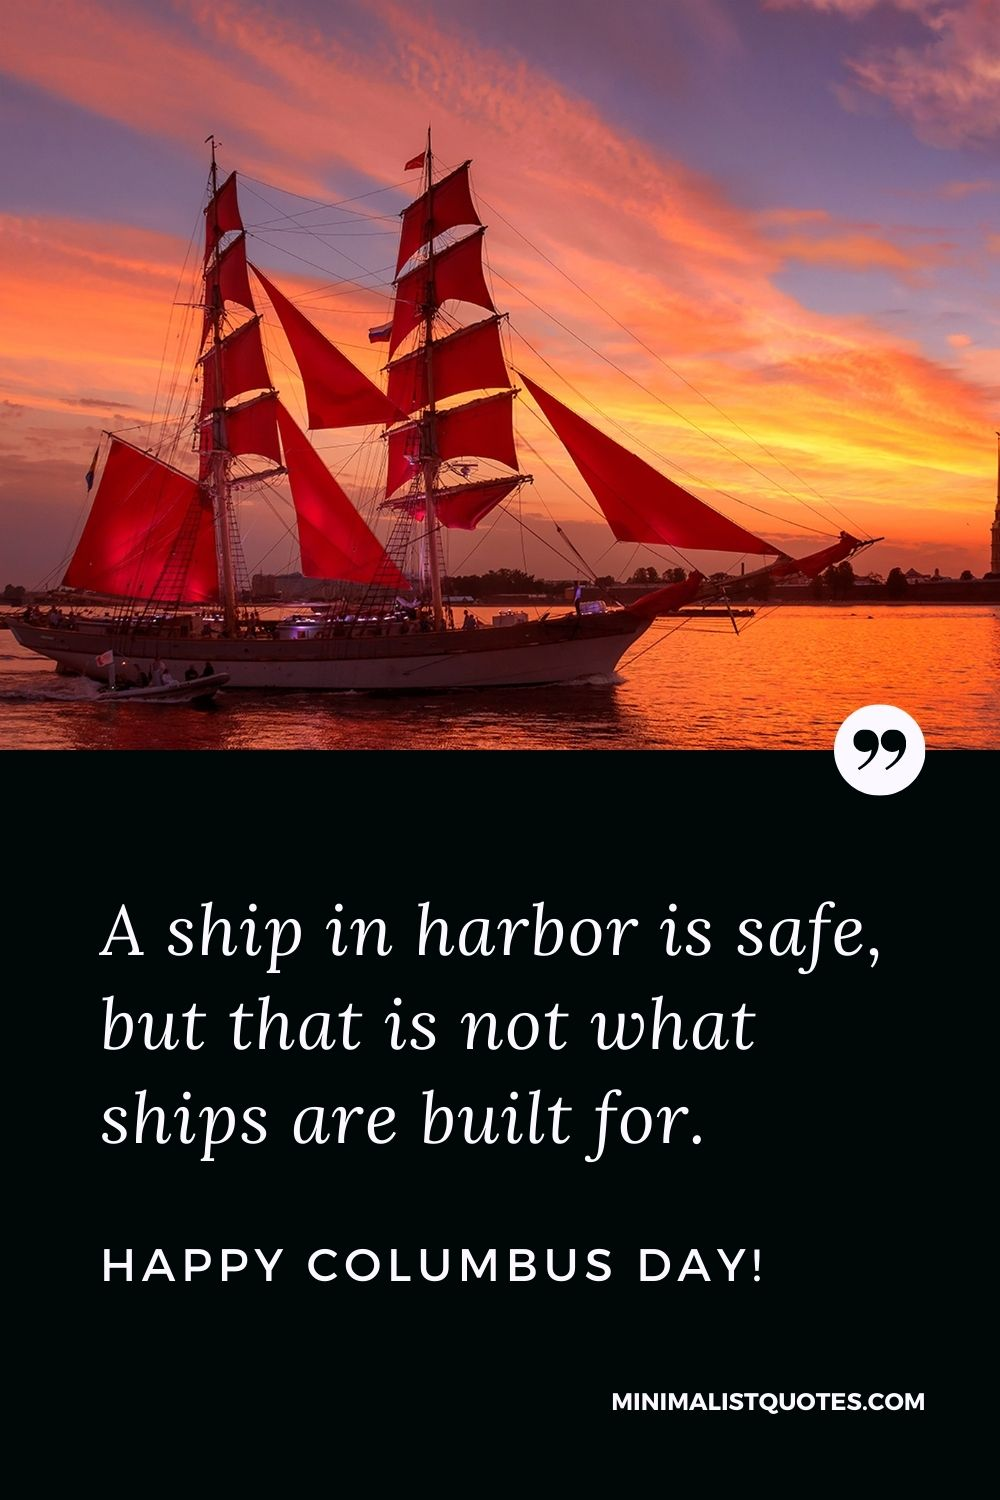 Columbus Day wish, quote & message with image: A ship in harbor is safe, but that is not what ships are built for. Happy Columbus Day!